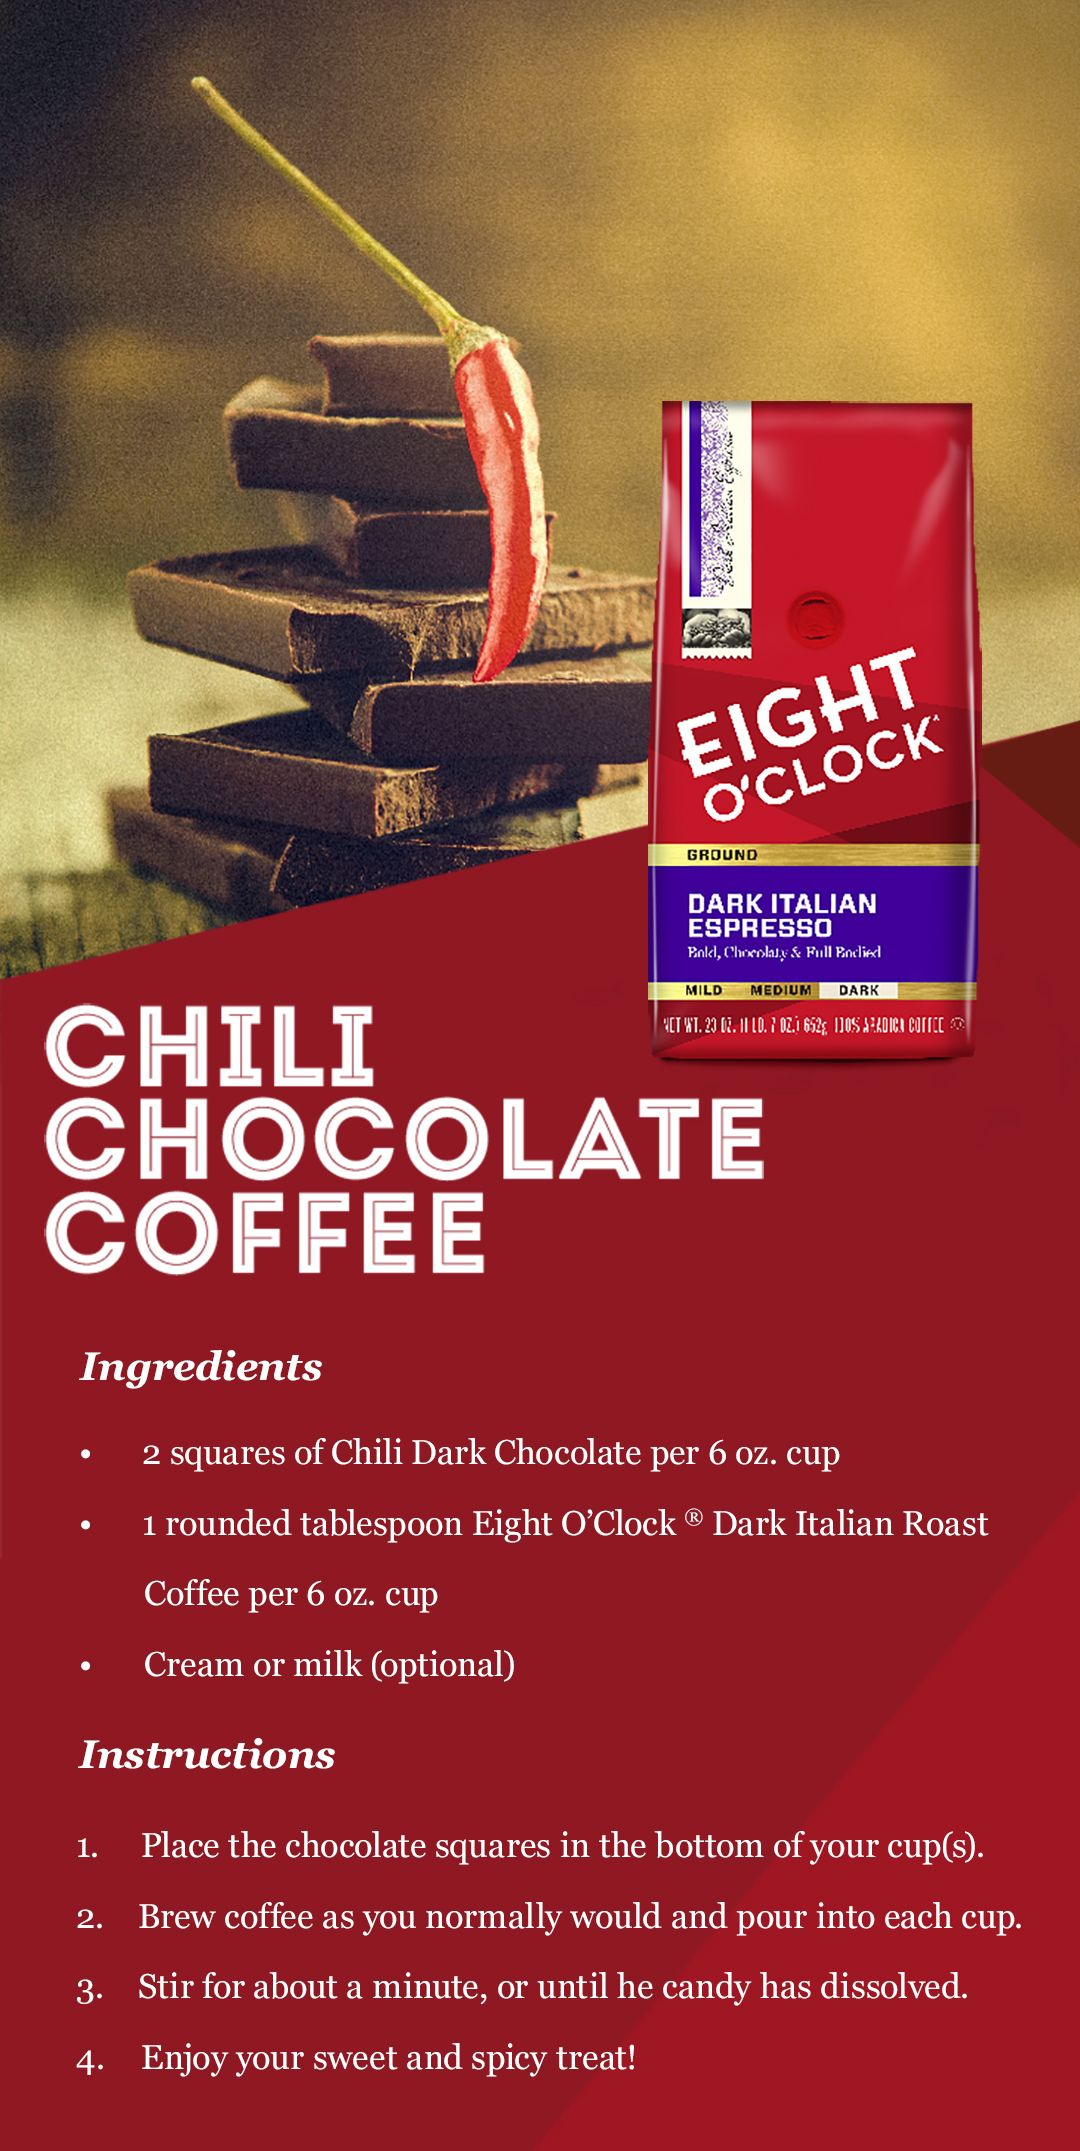 Chili and chocolate...in my coffee? Yes, please!